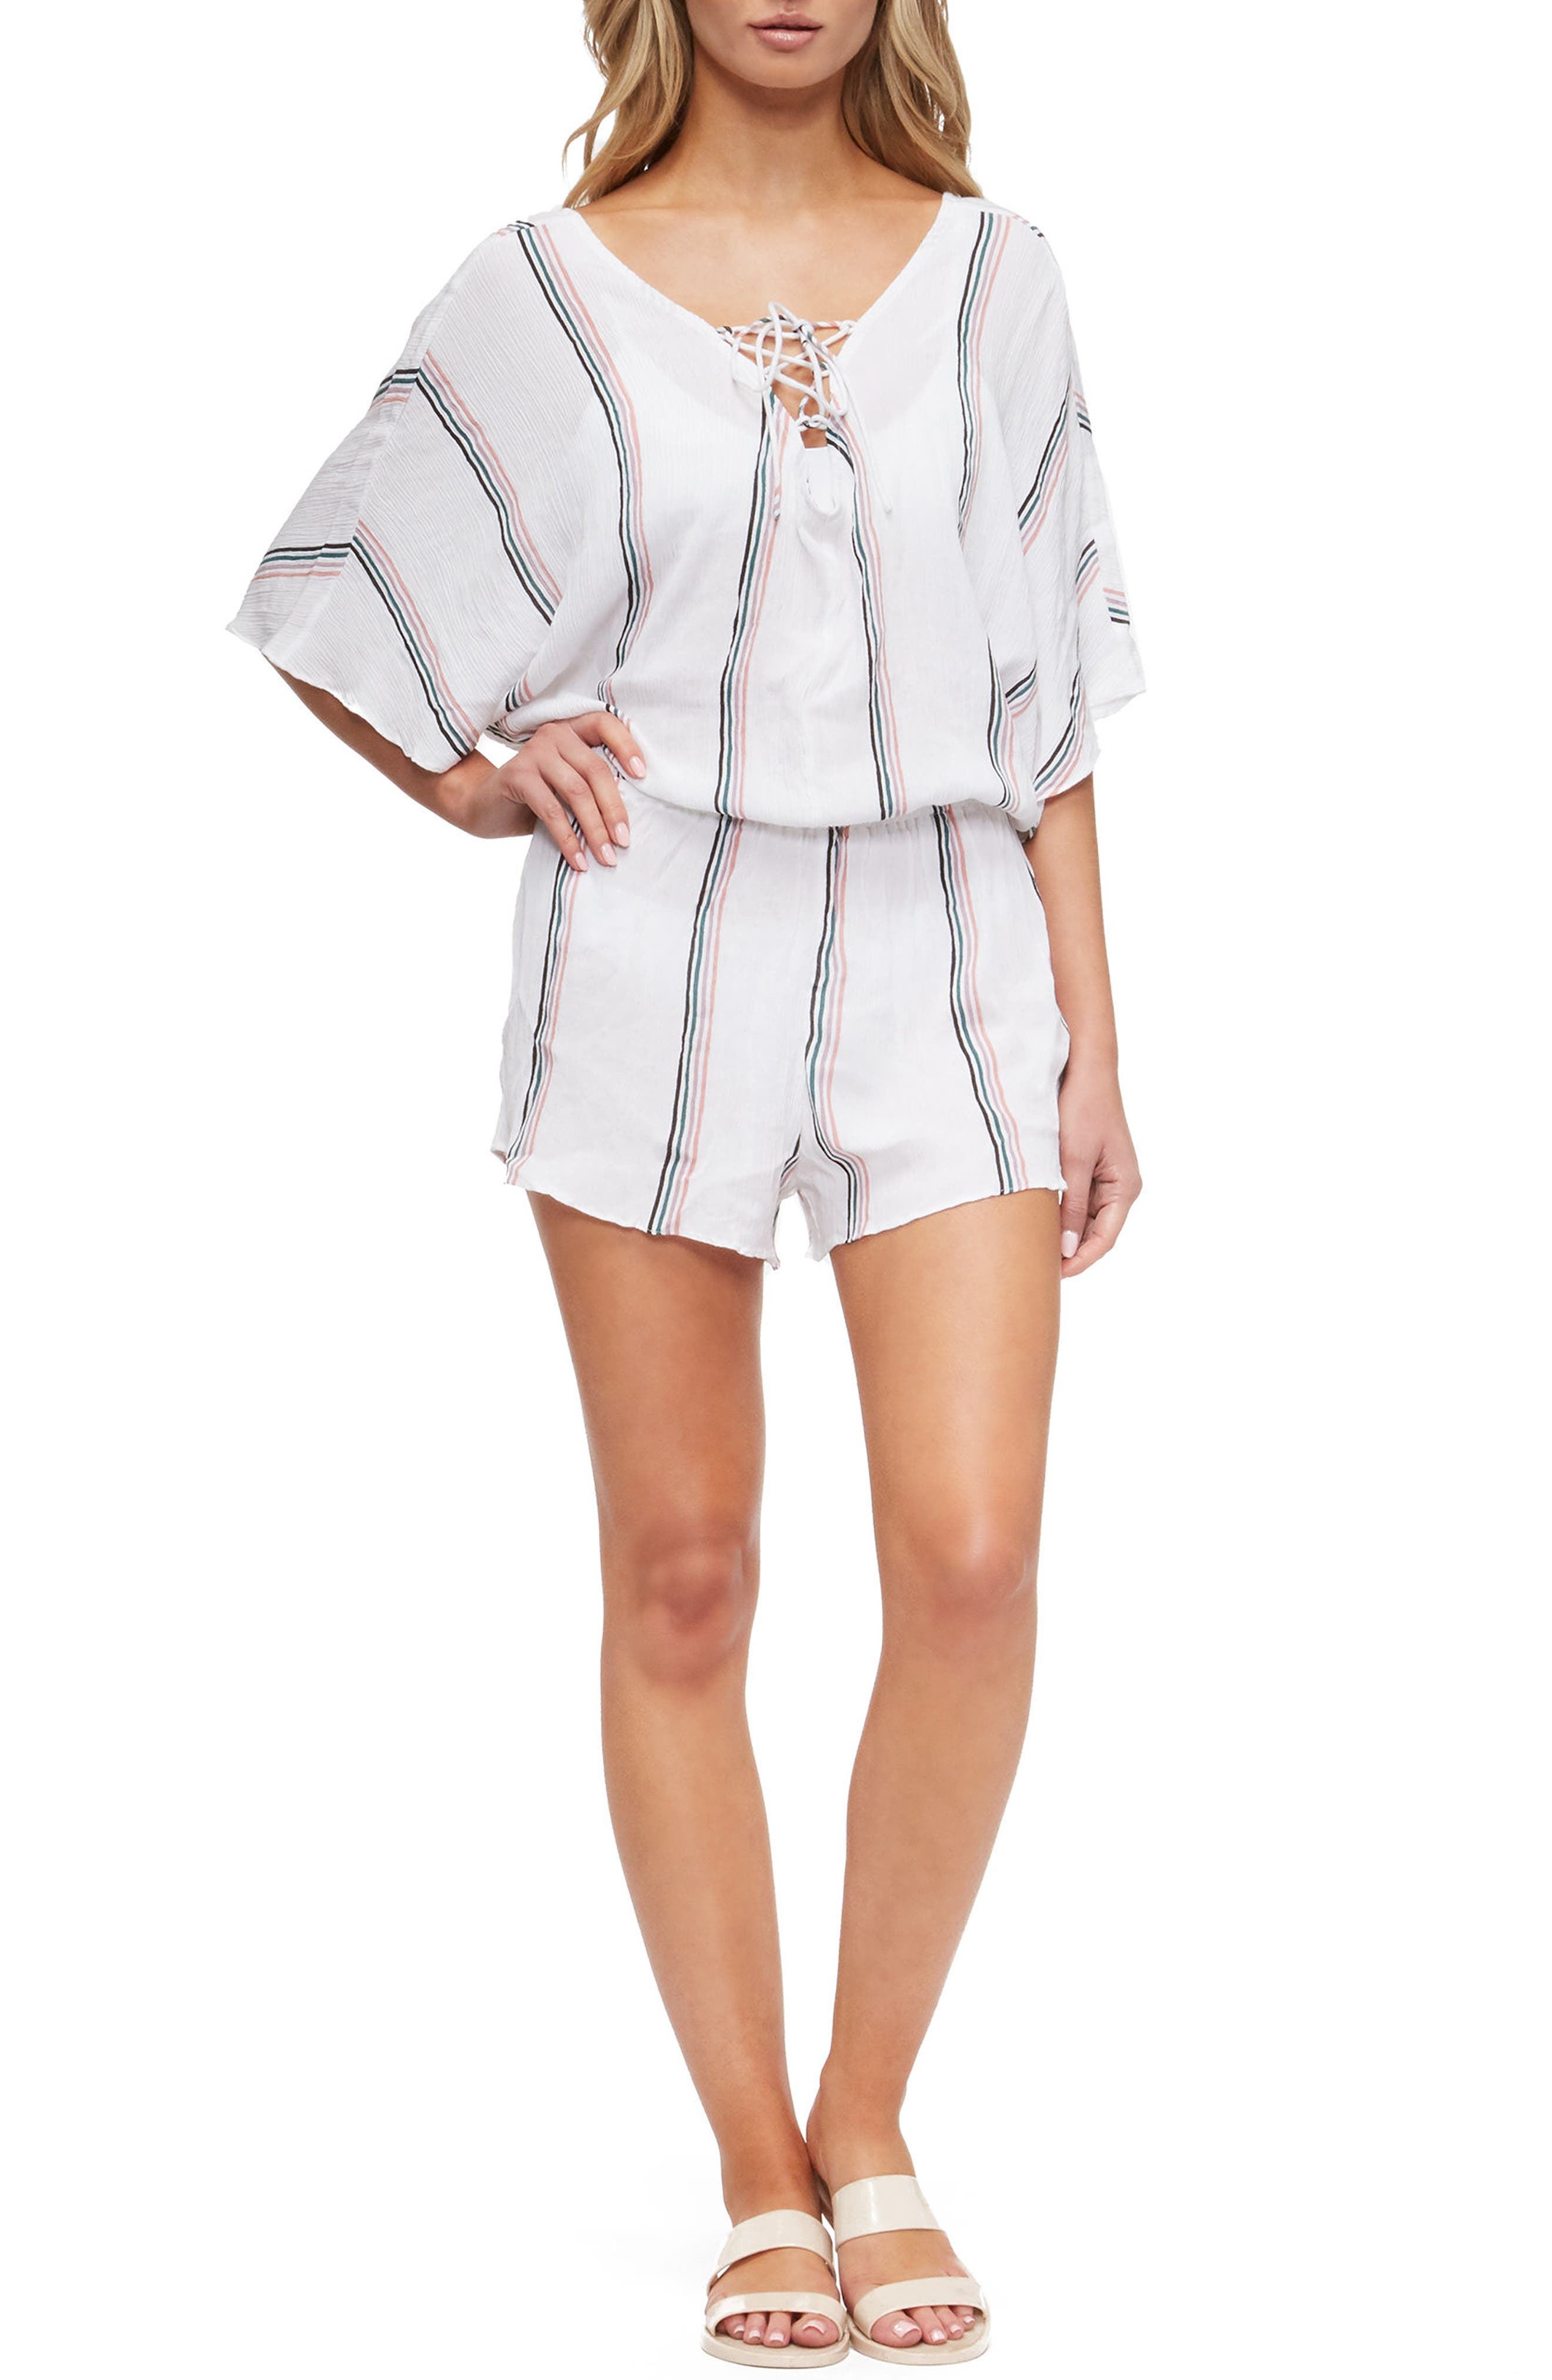 Harmony Cover-Up Romper,                             Main thumbnail 1, color,                             831